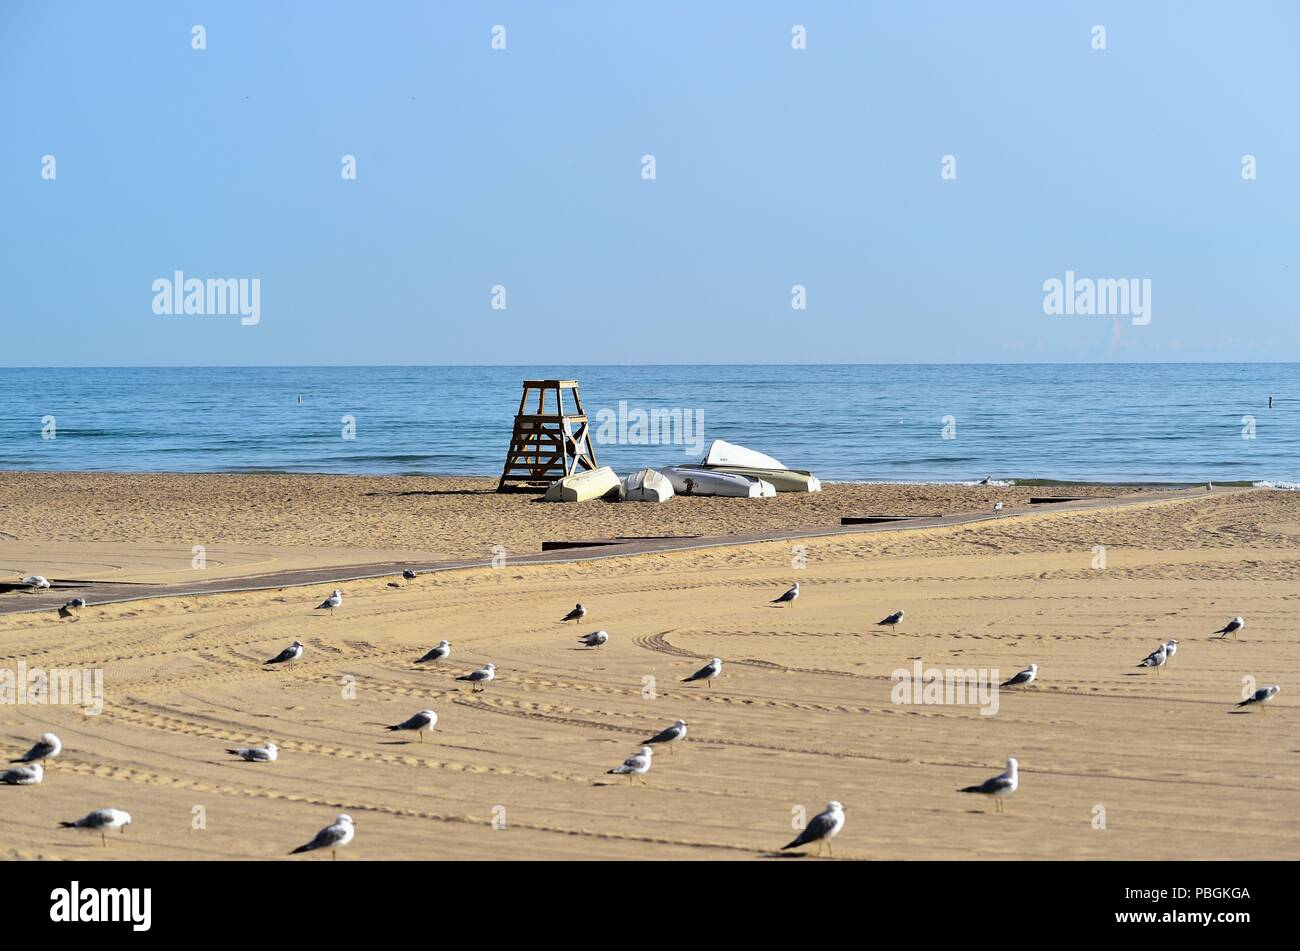 Chicago, Illinois, USA. An empty stretch of sand inhabited only by seagulls and a life guard station at Hollywood Beach, aka Kathy Osterman Beach). - Stock Image